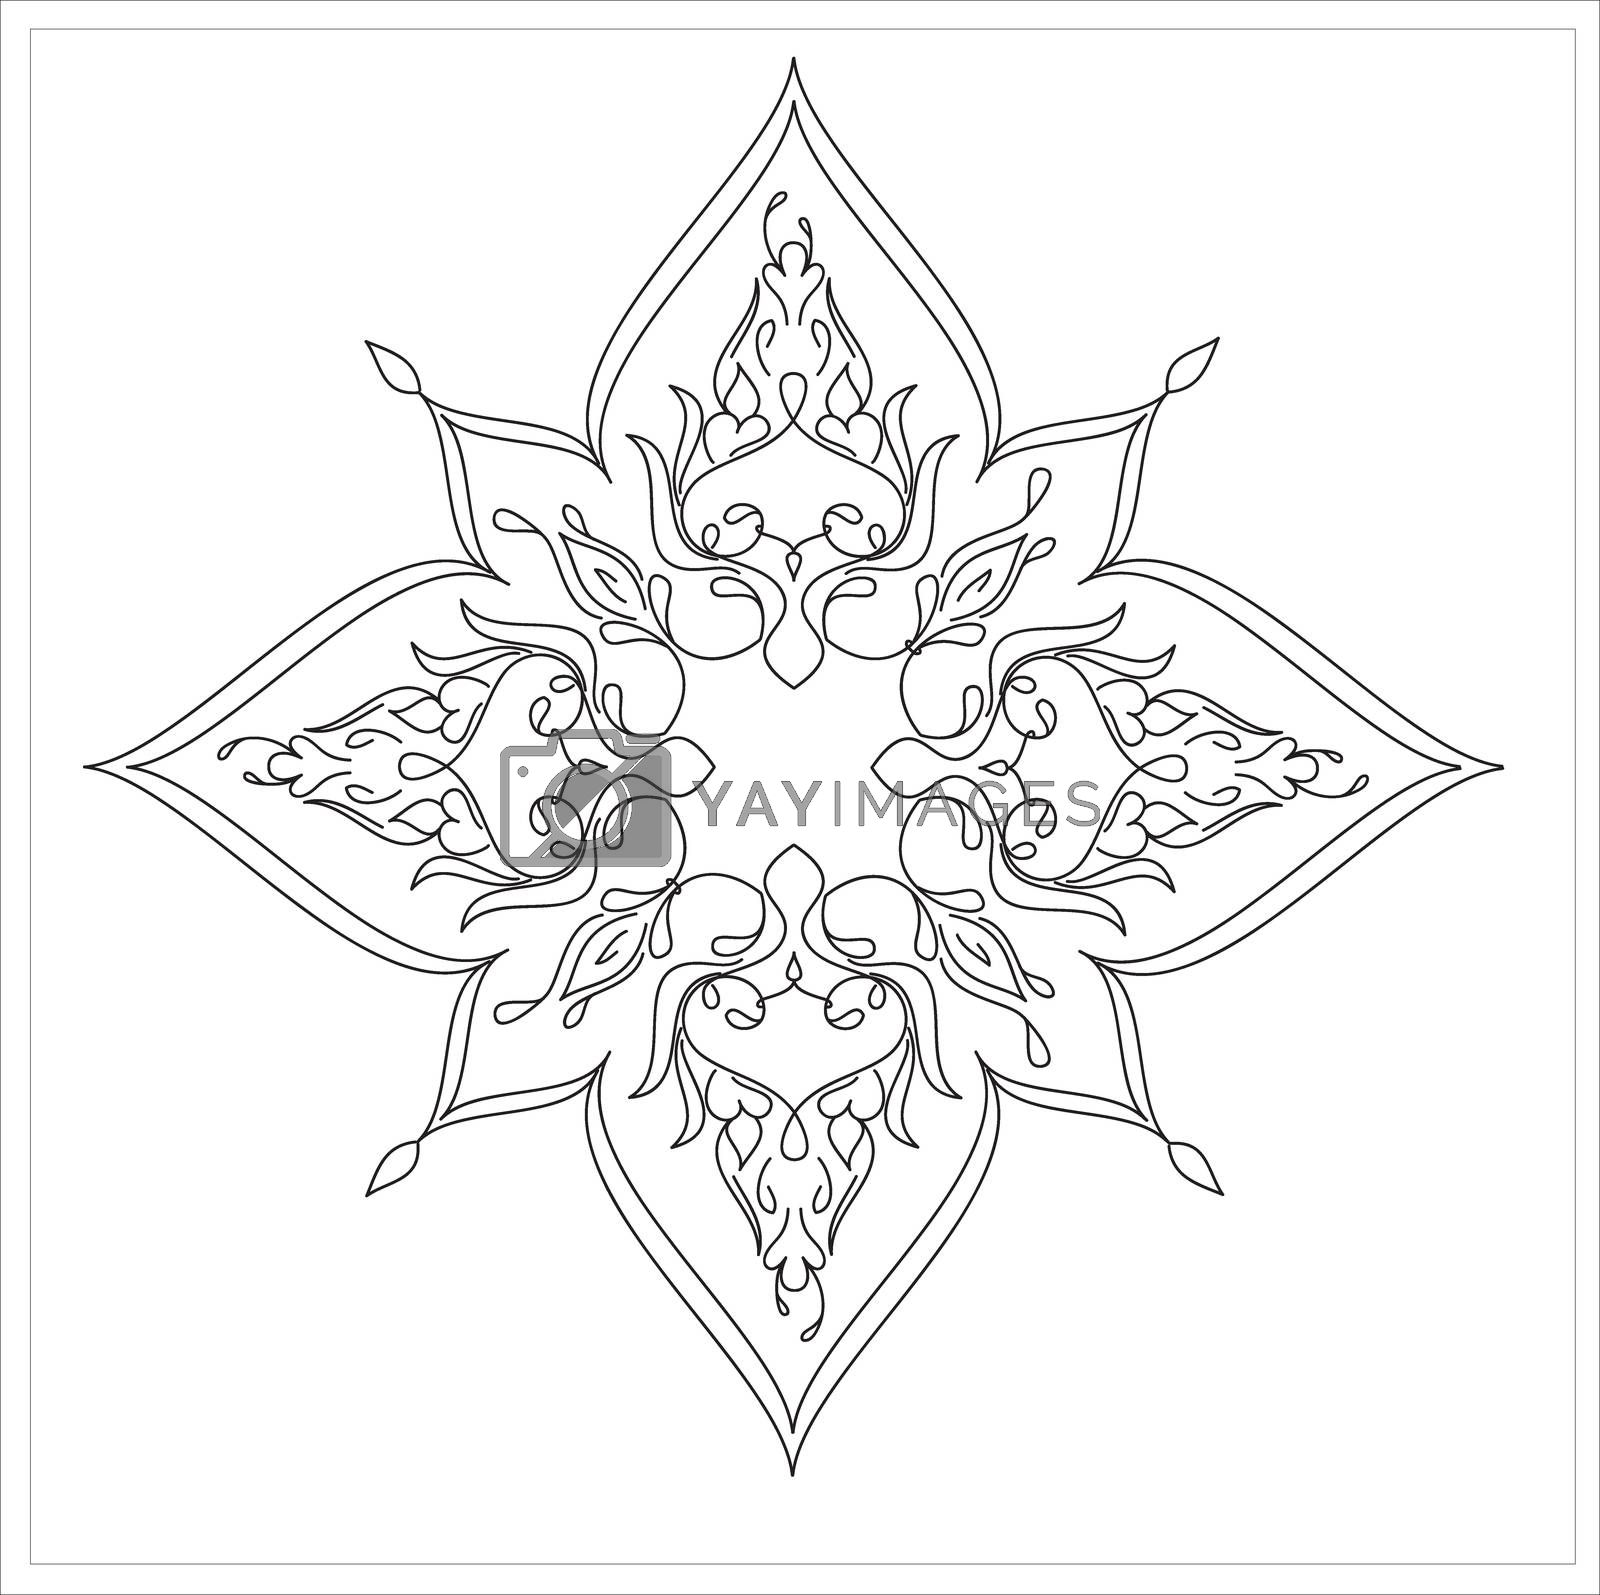 Royalty free image of Ottoman Tile Art With  Islamic Elements square without colour by mturhanlar